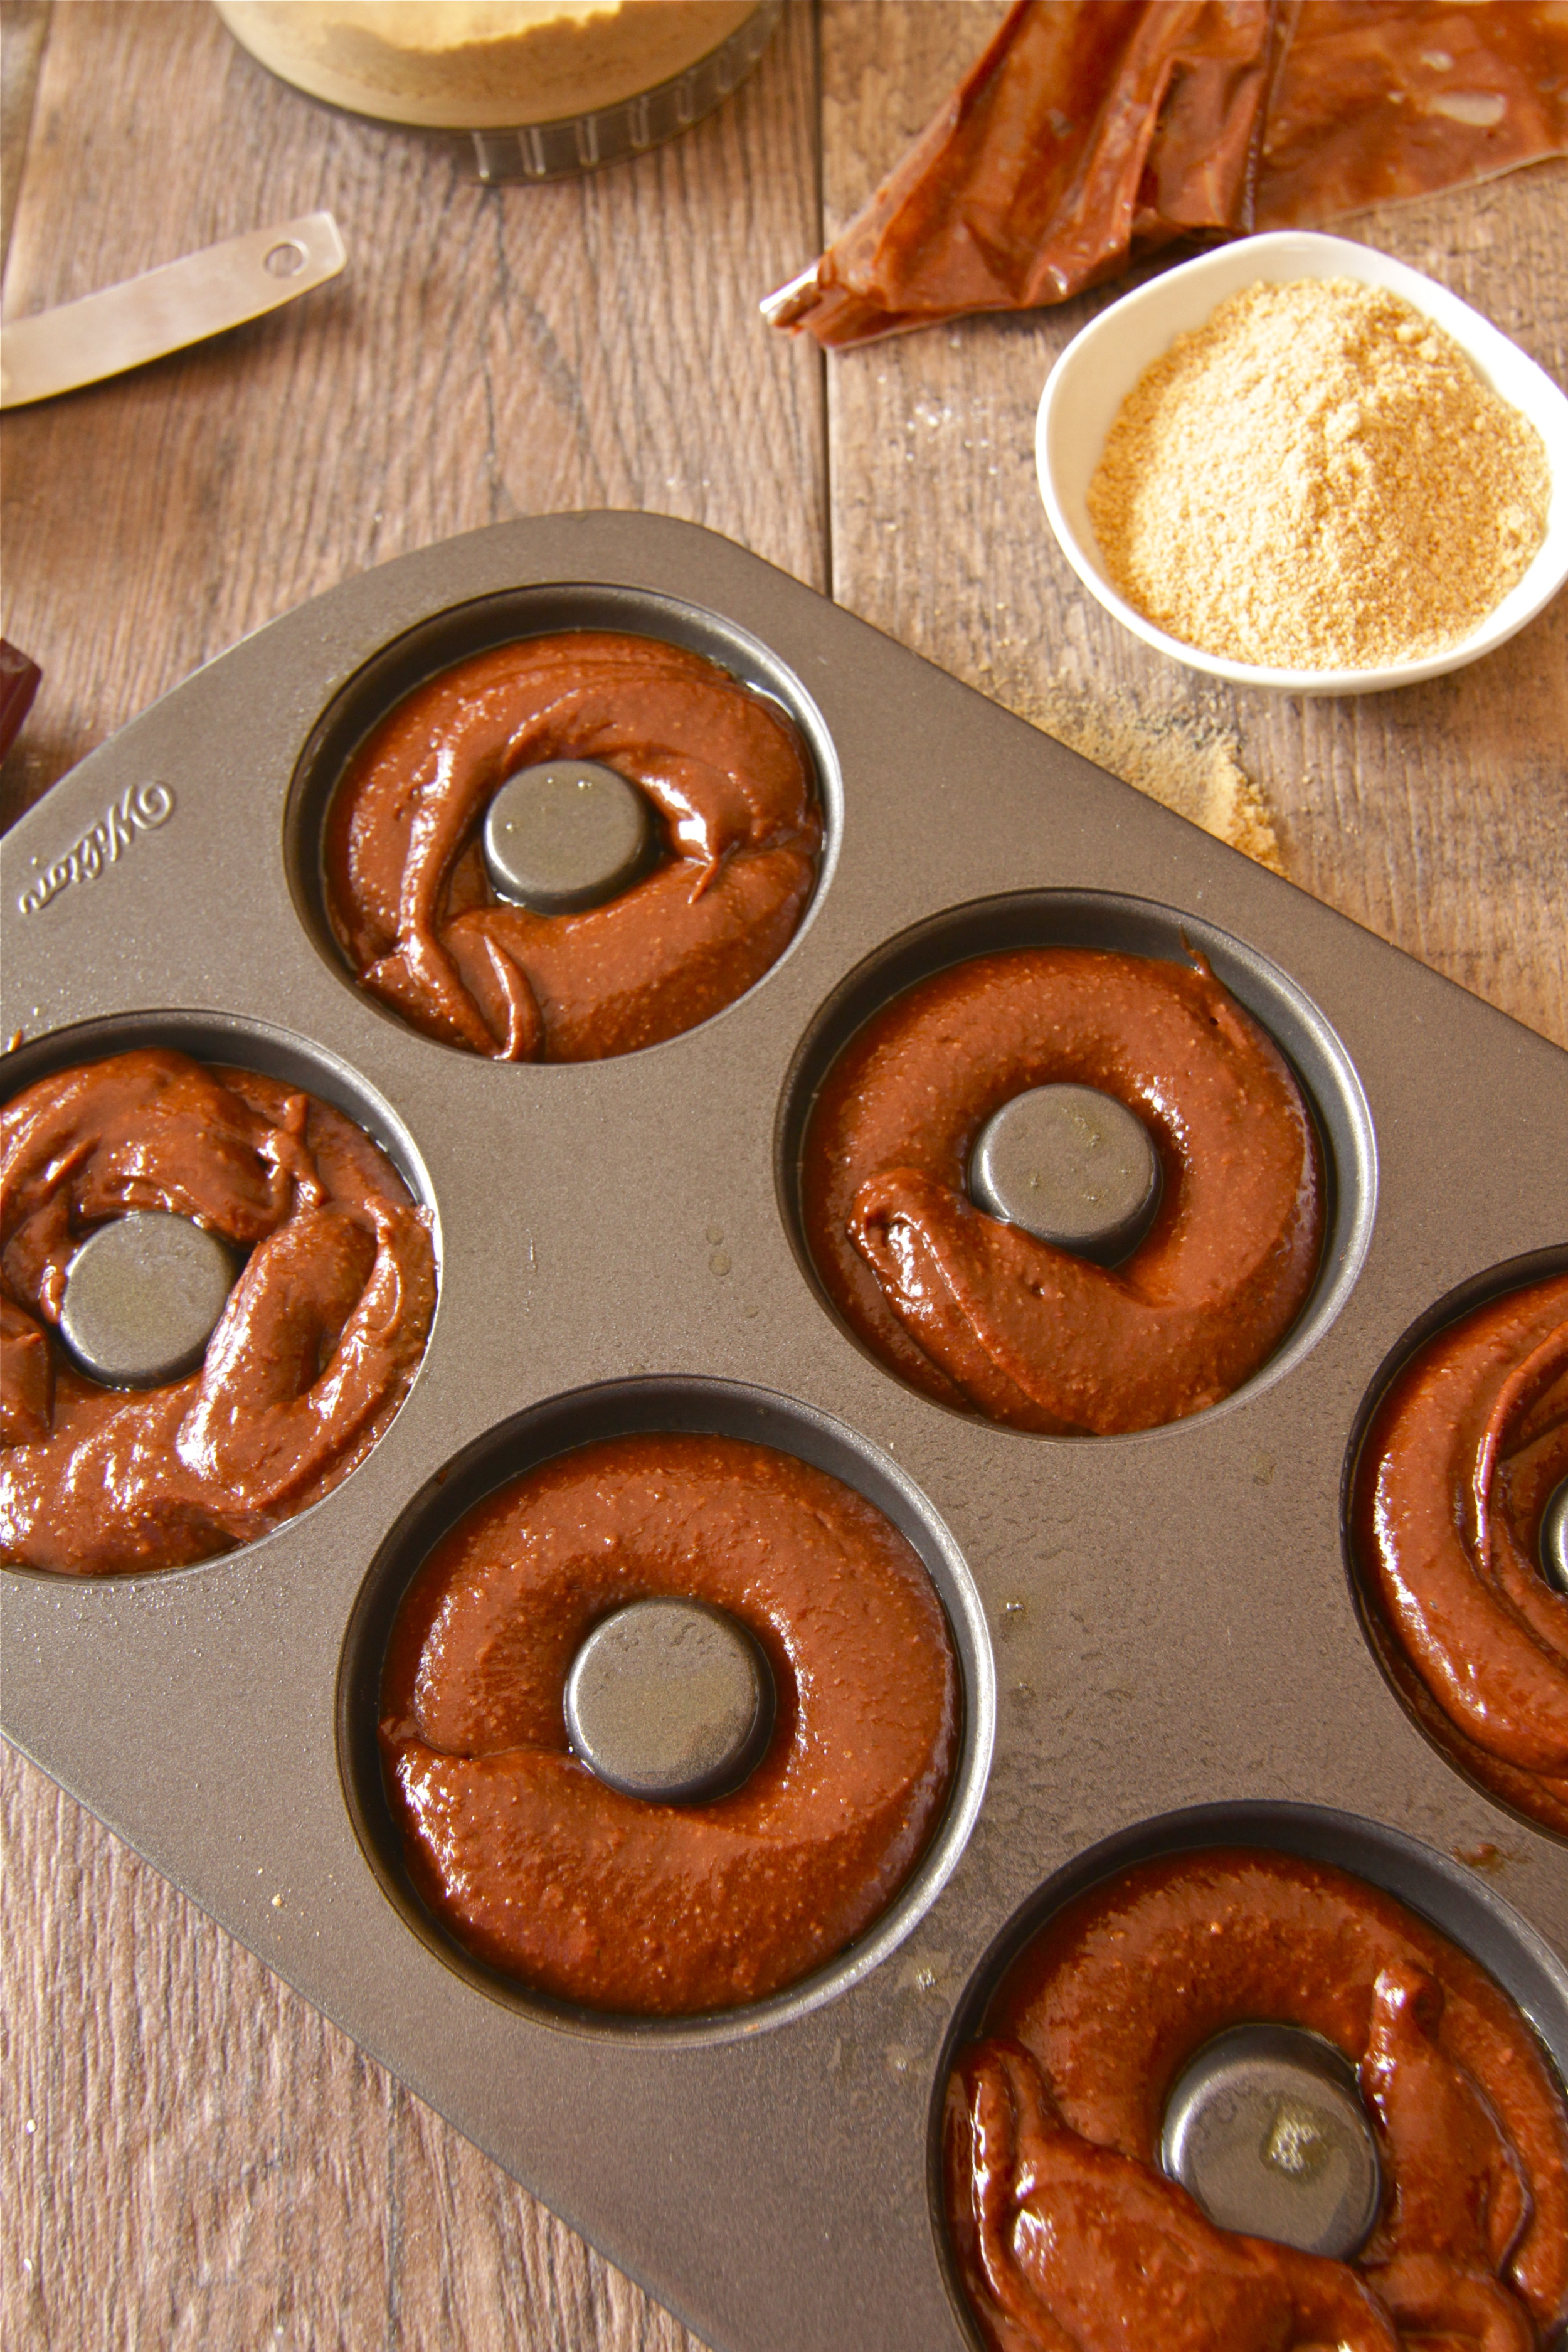 smores donuts-quinns place_6.jpg